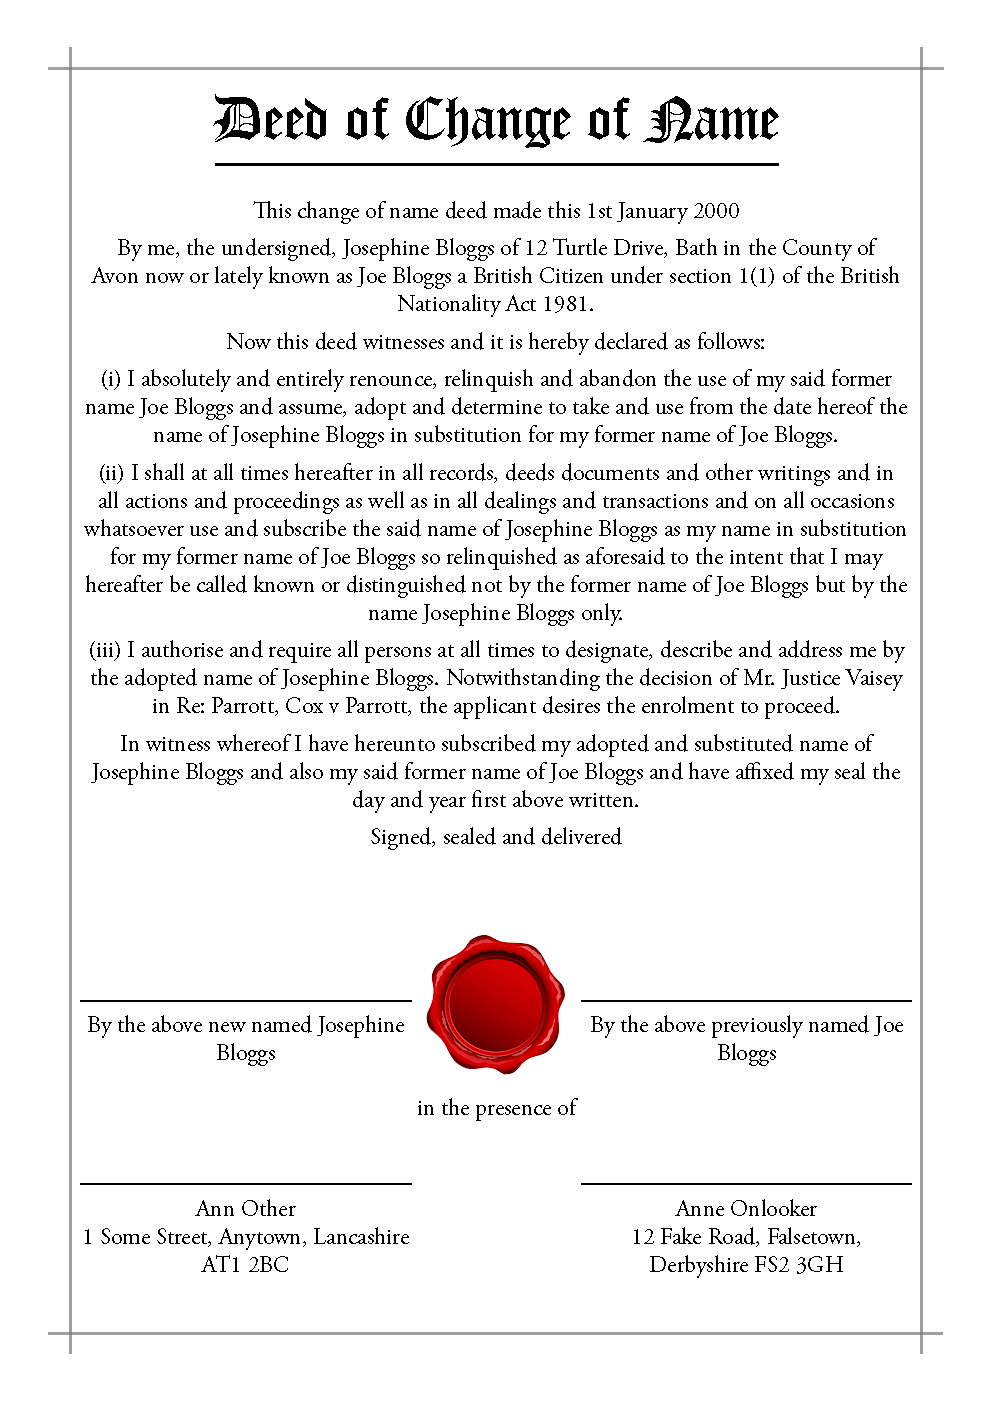 Deed Polls And Stat Decs - Transfigurations Inside Deed Poll Name Change Letter Template